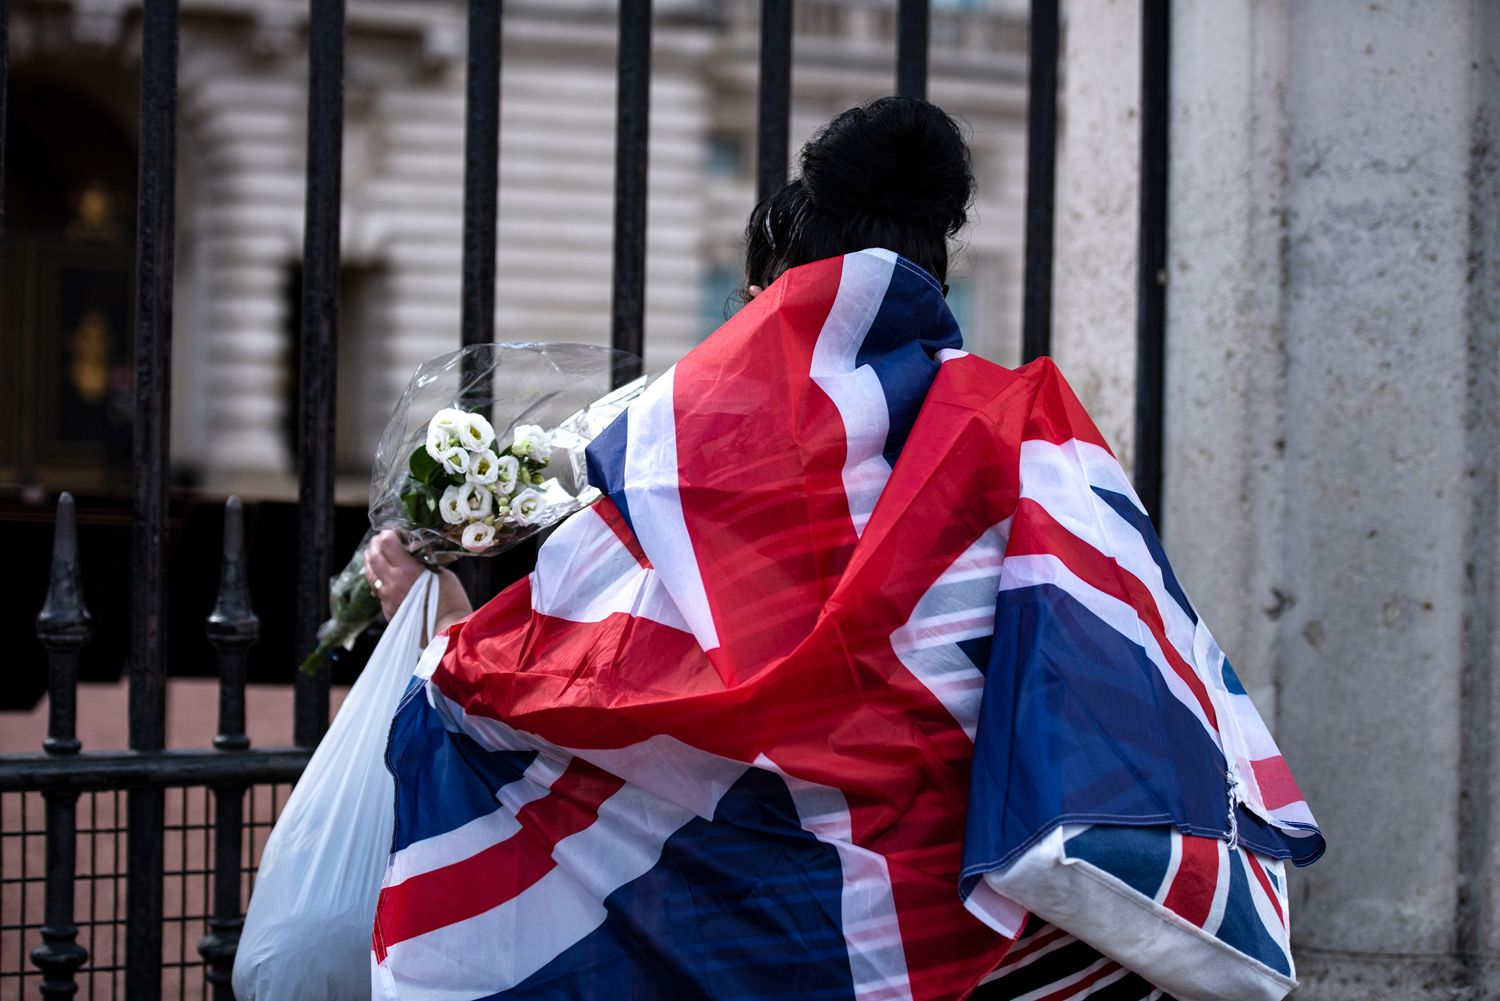 Laying of flowers tribute for Prince Philip at Buckingham Palace gate